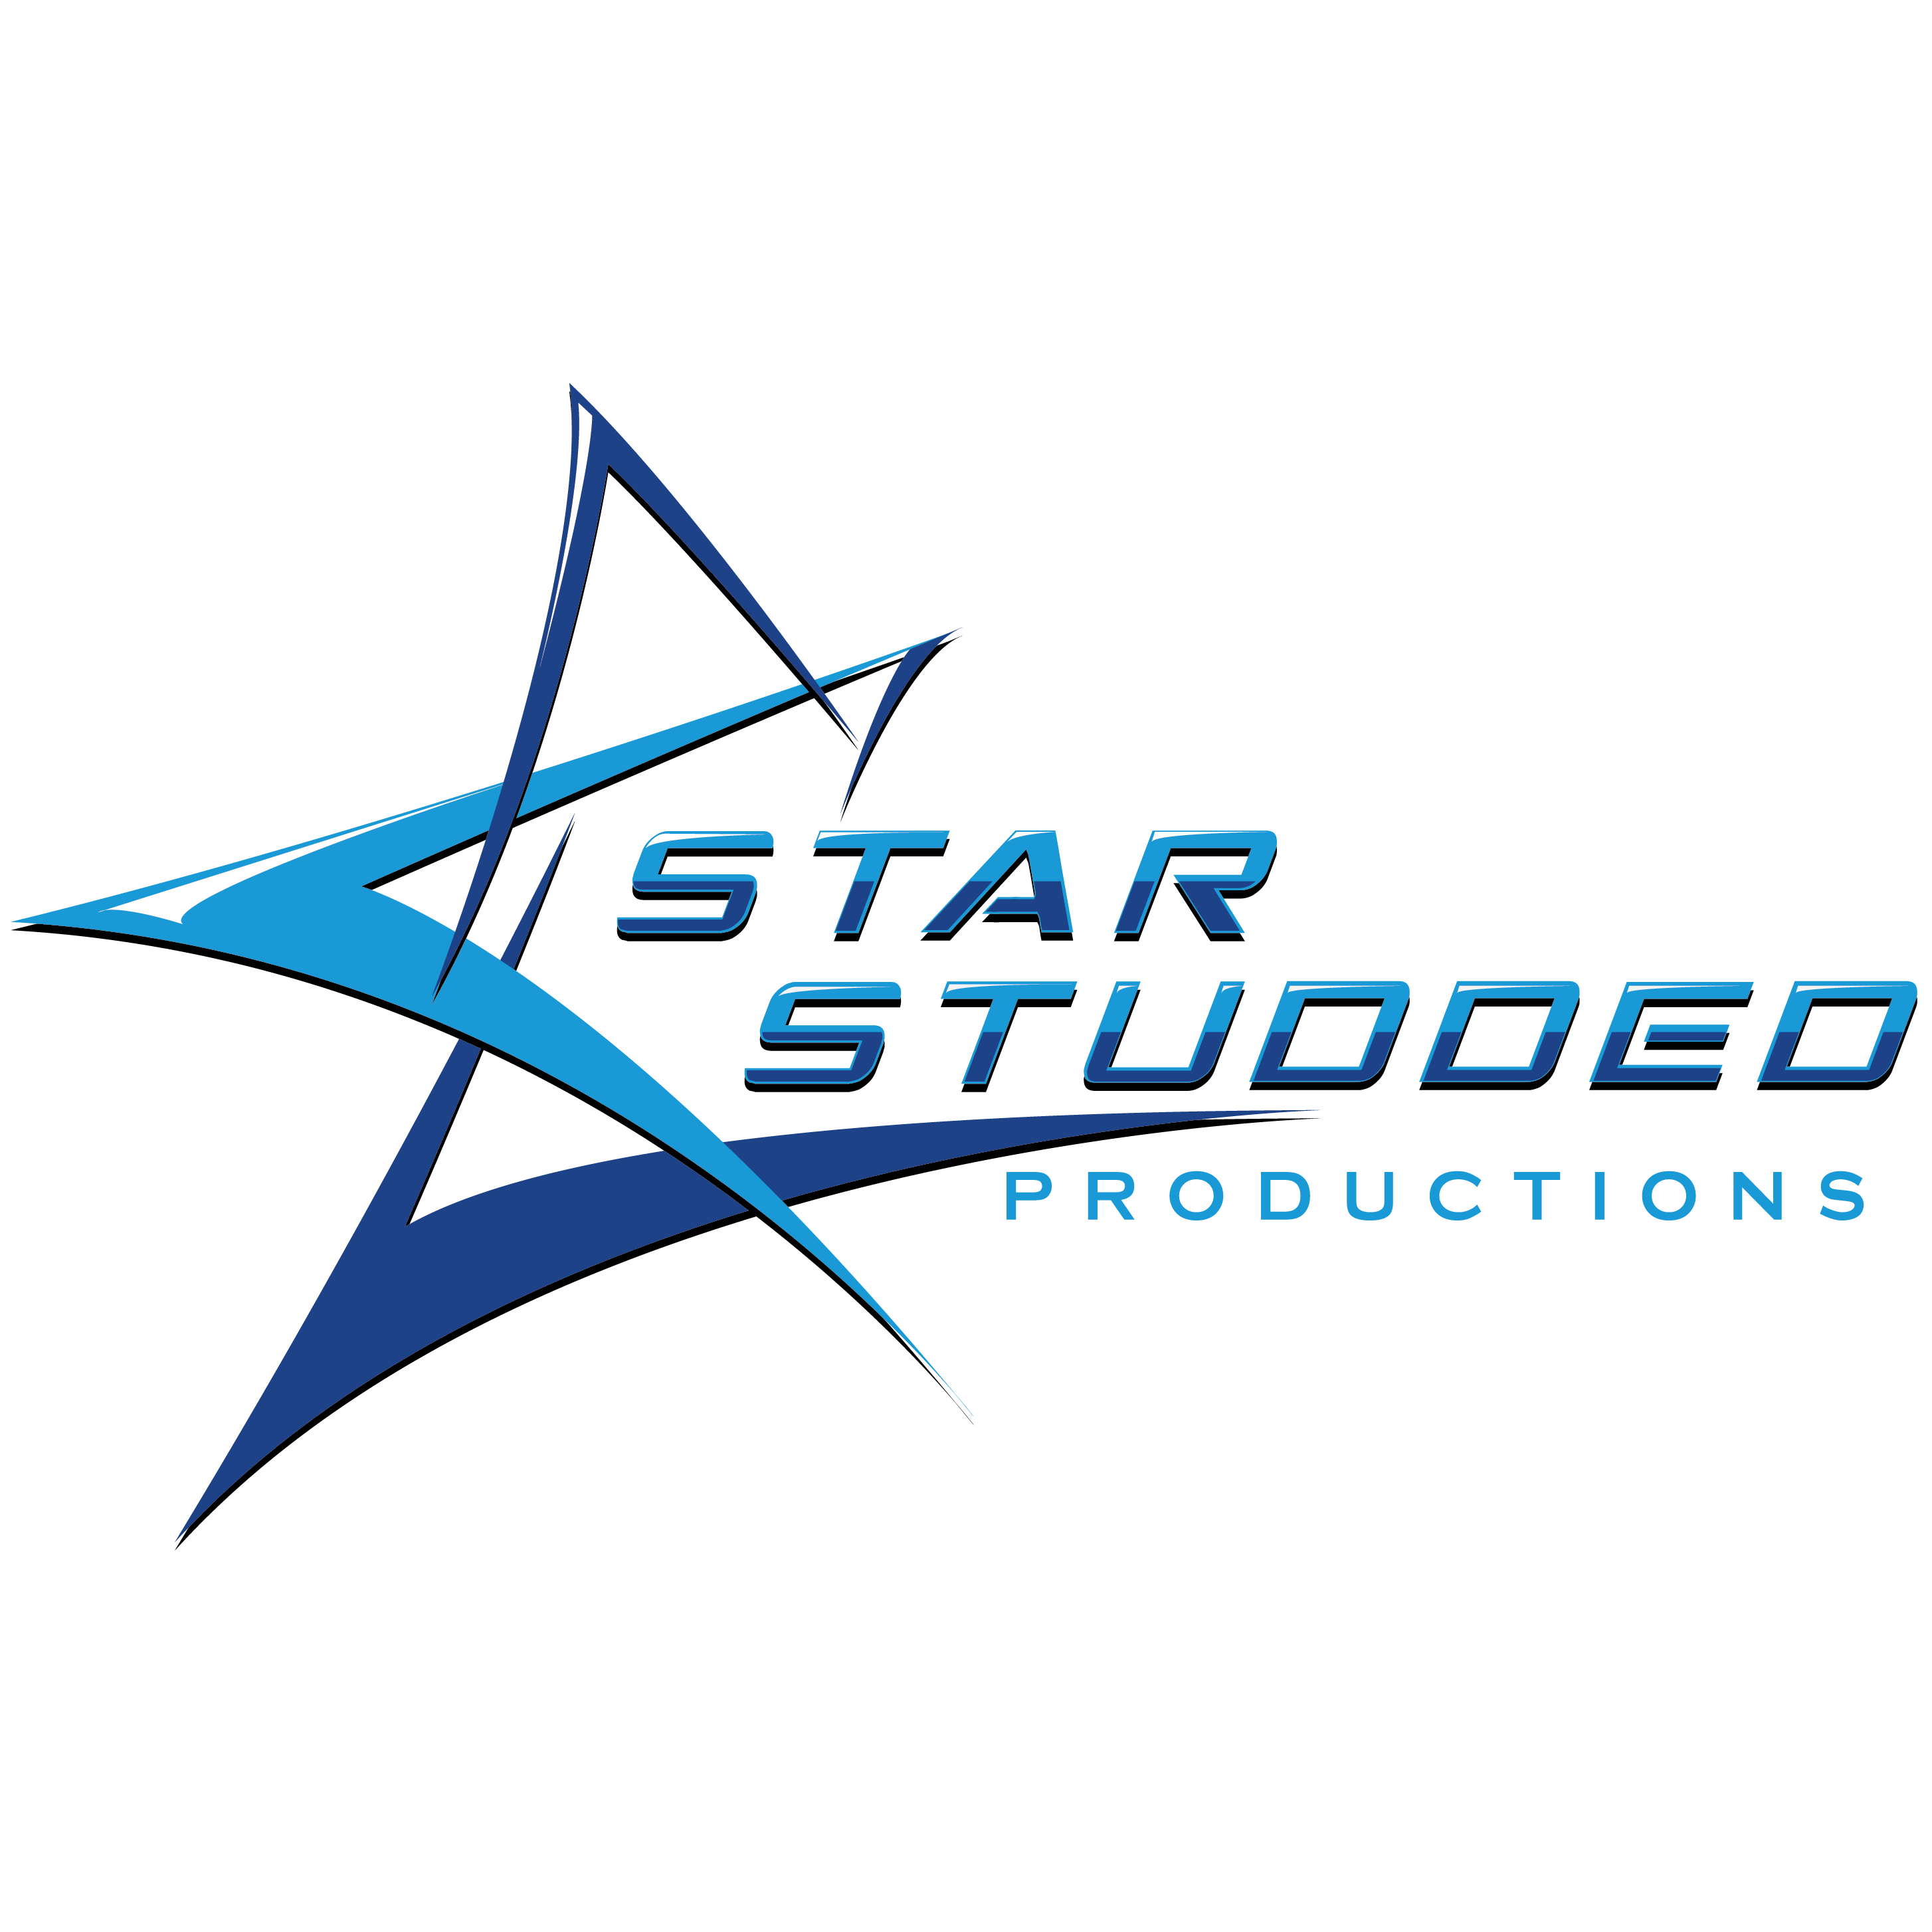 StarStudded Productions